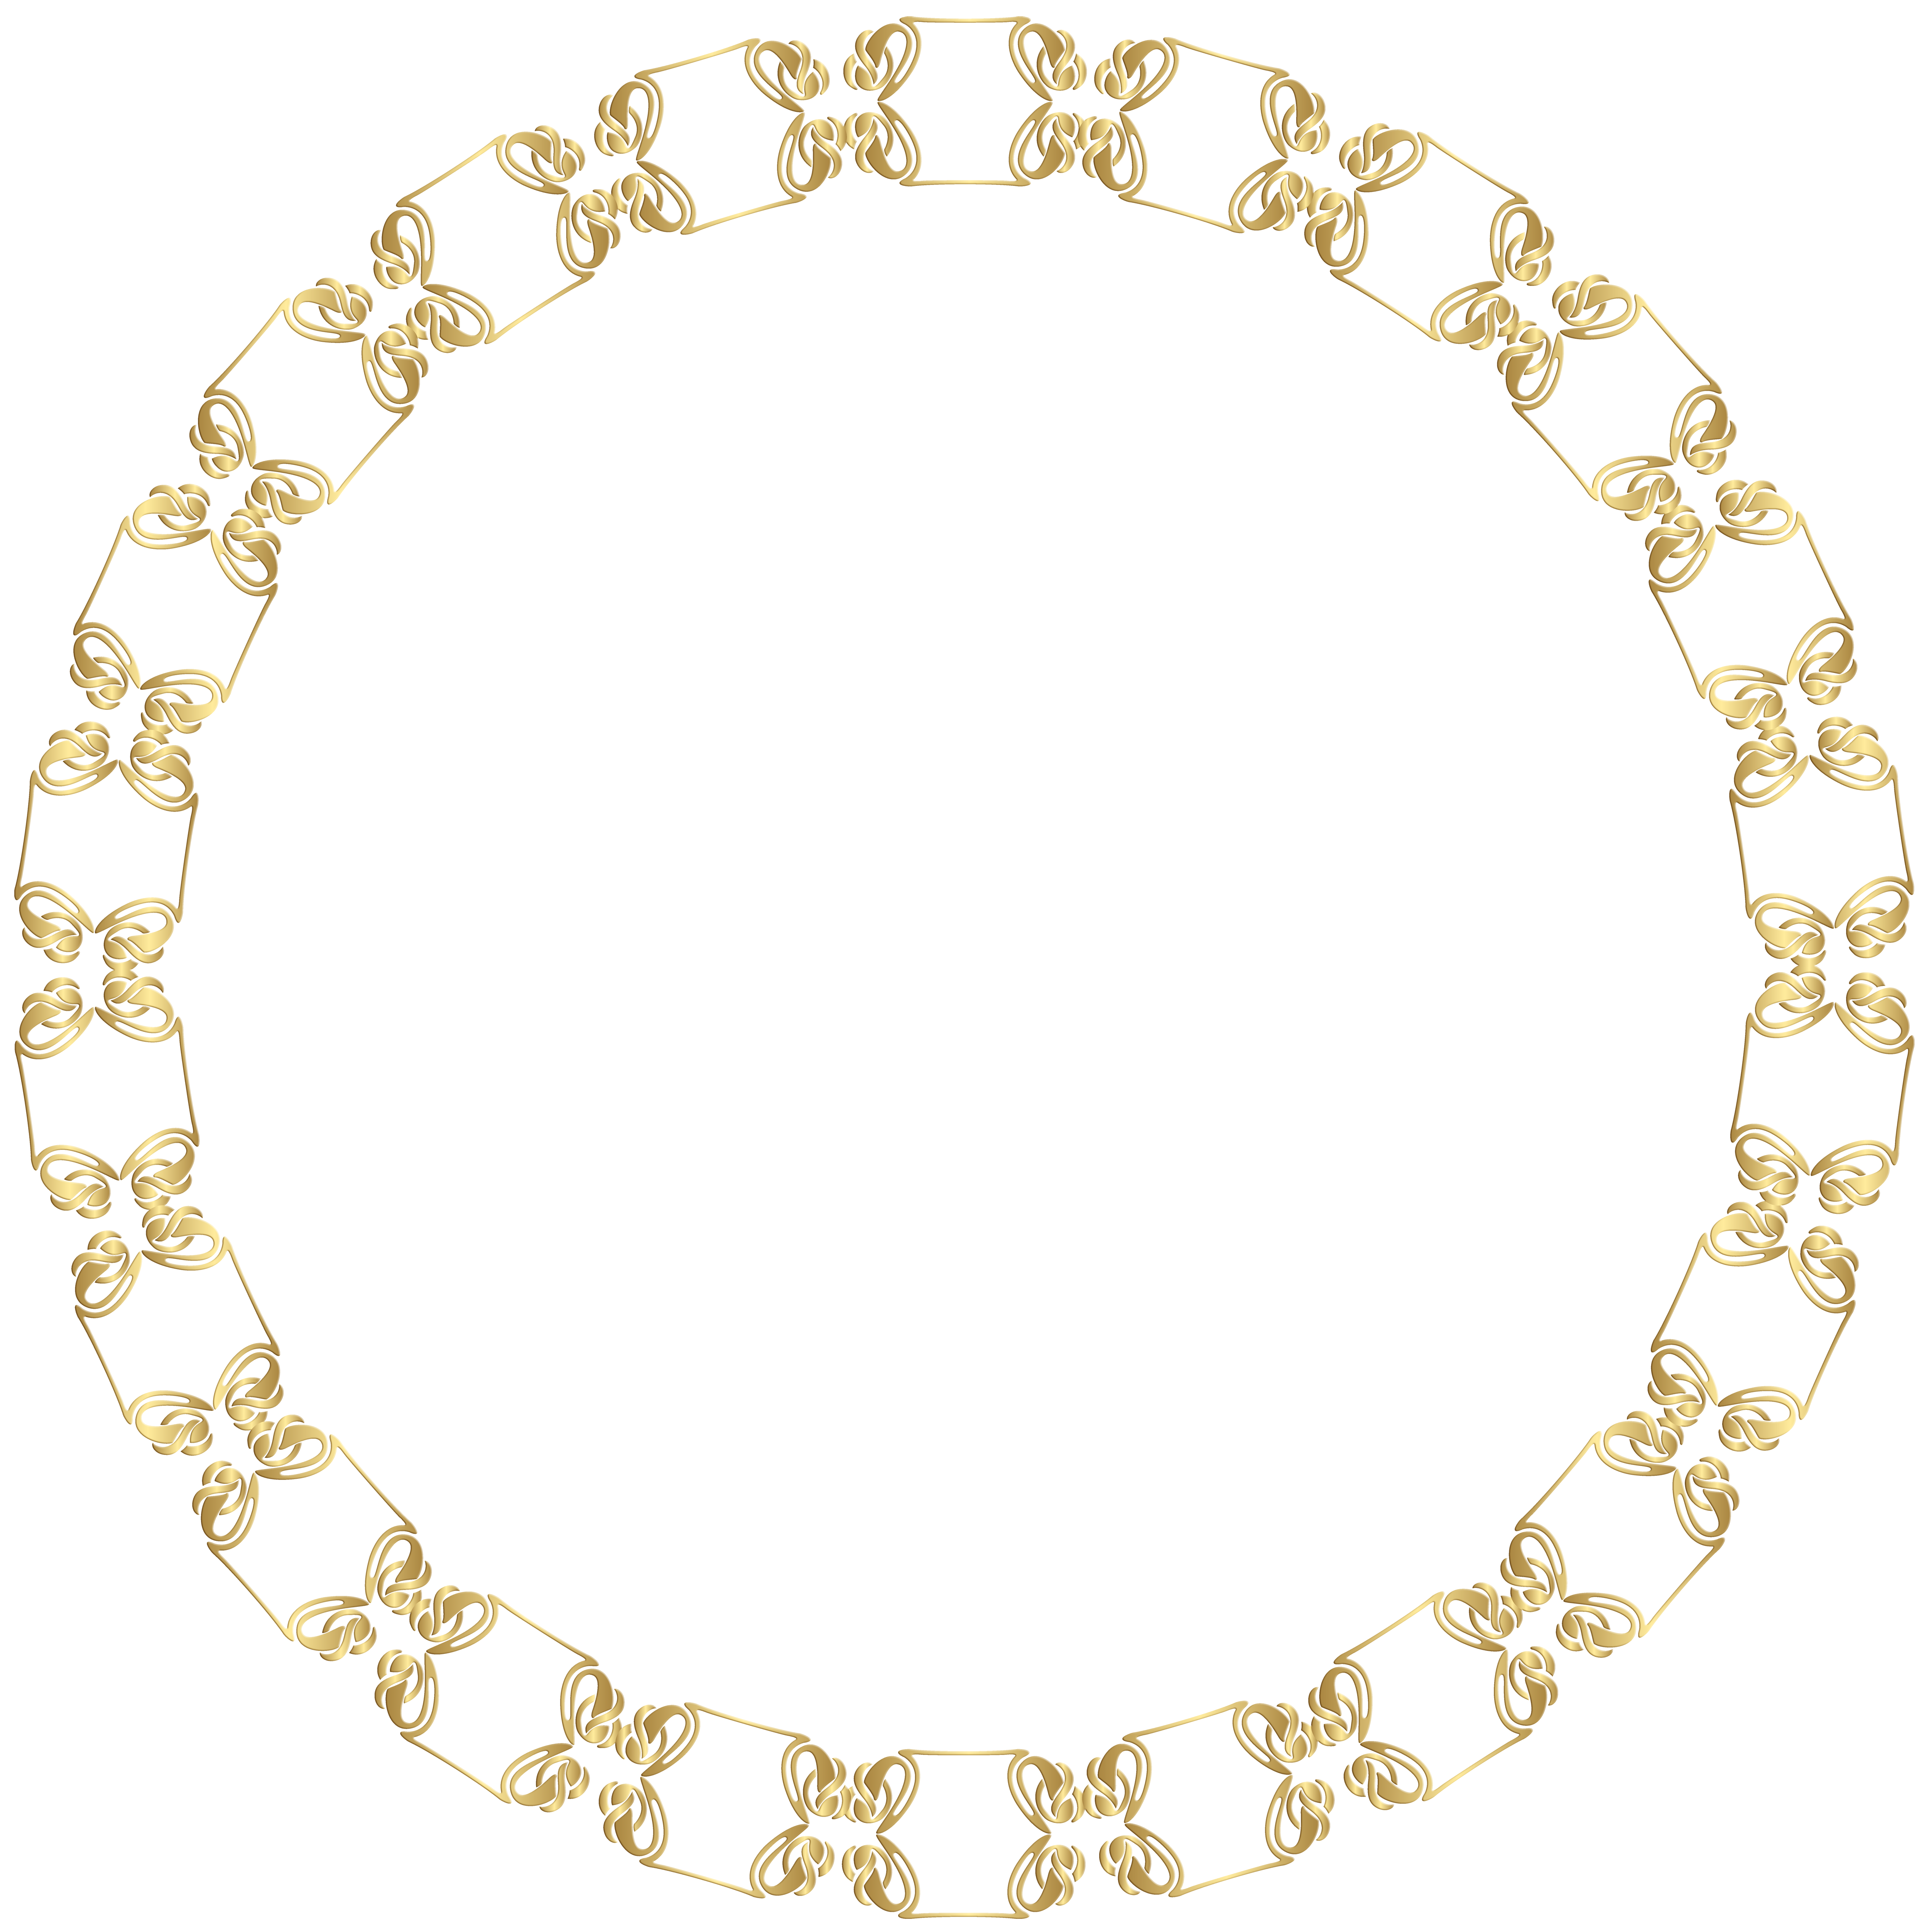 Border frame png clip. Necklace clipart round gold